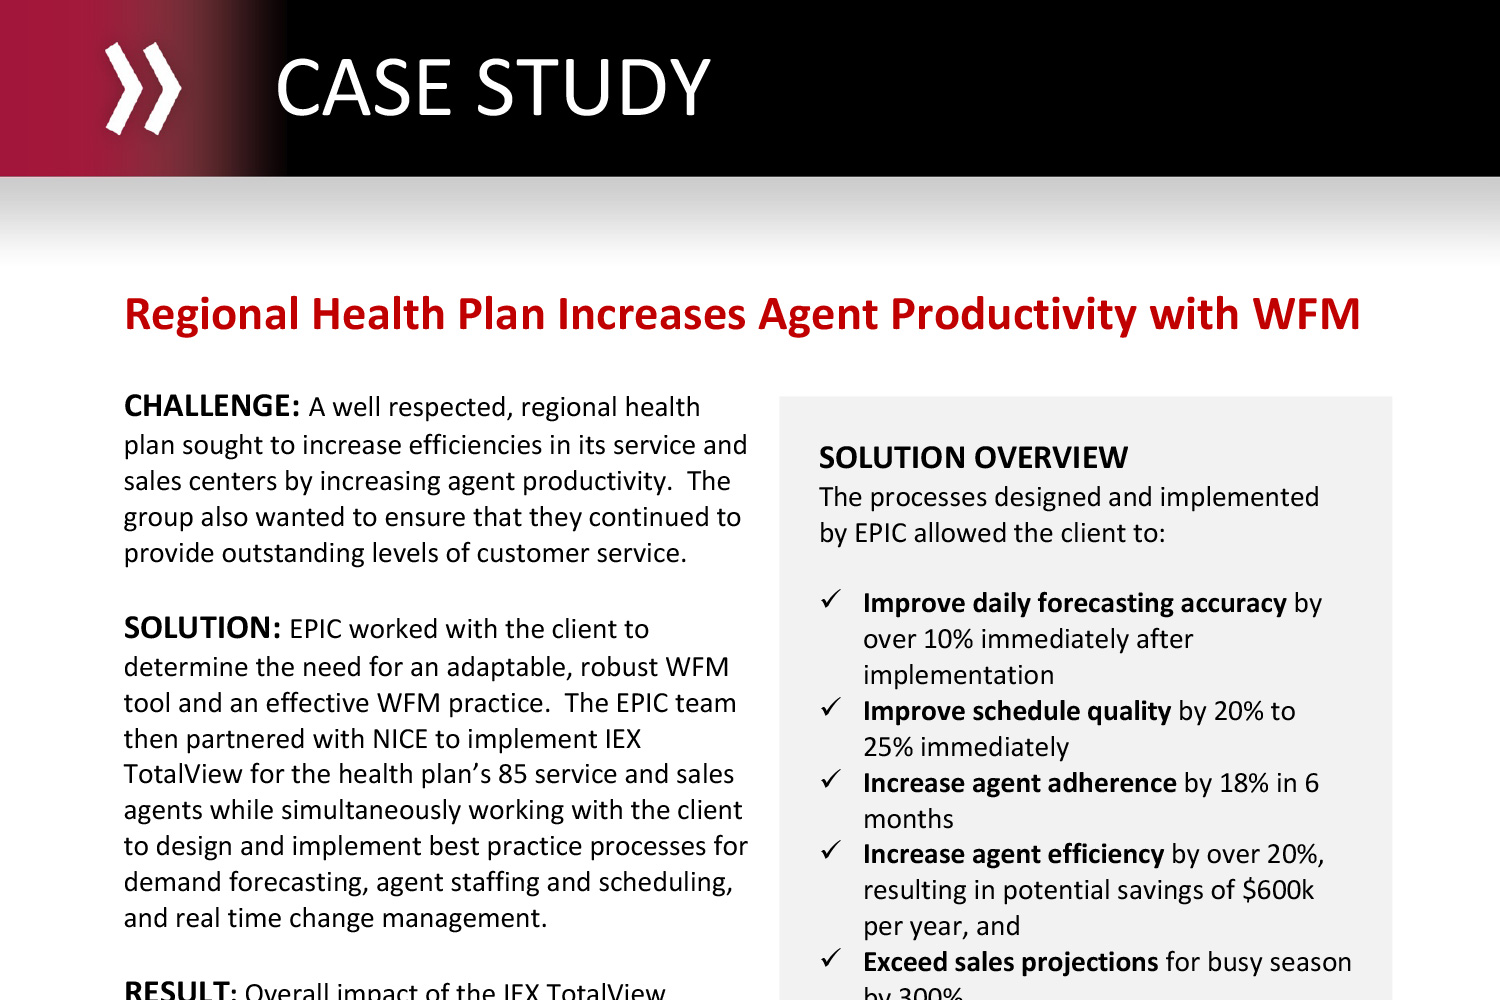 Regional Health Plan Increases Agent Productivity with WFM